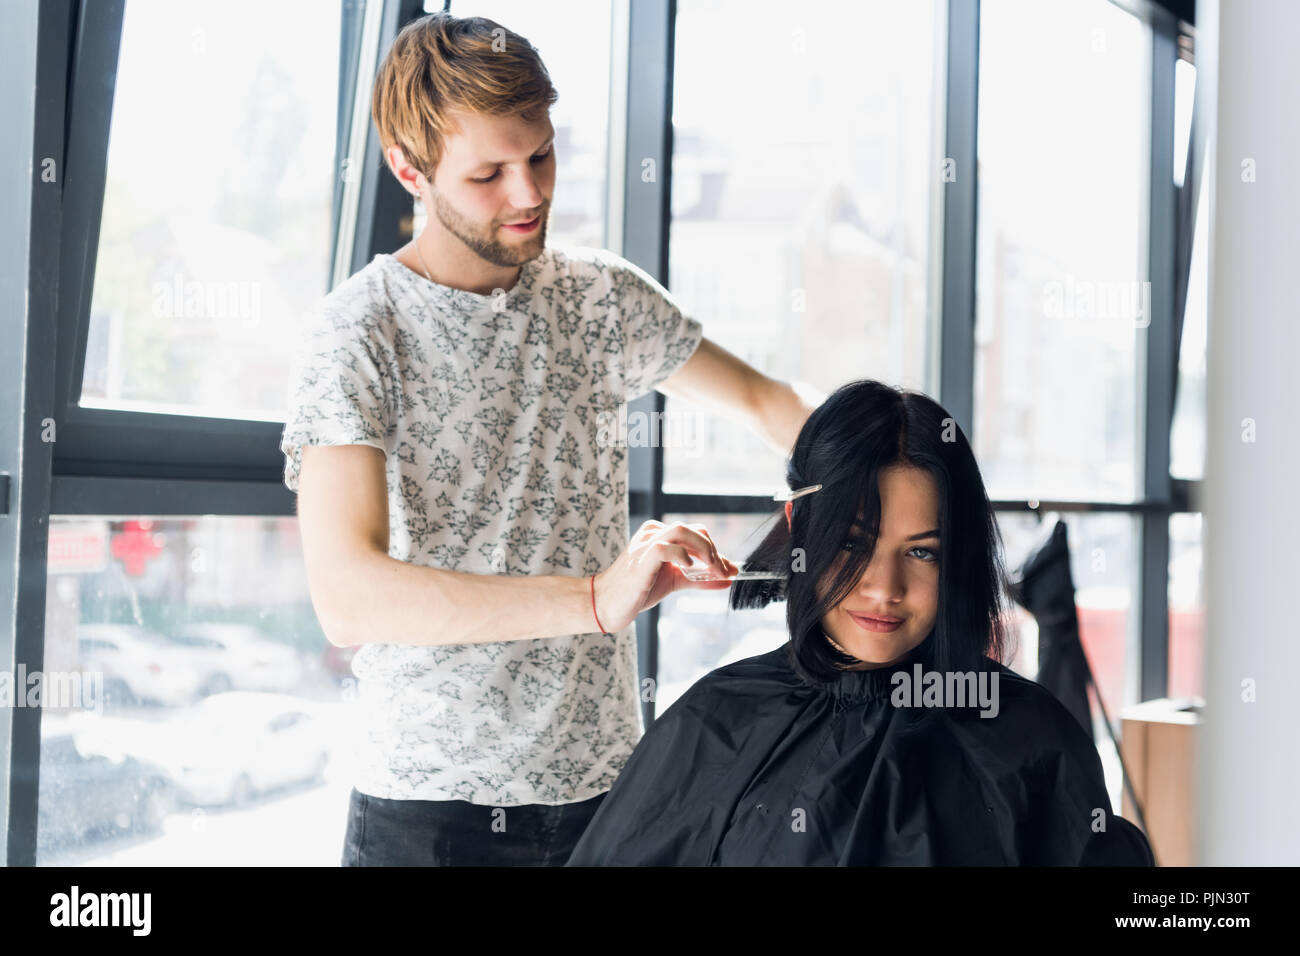 Going for a change of style. Young beautiful woman discussing hairstyling with her hairdresser while sitting in the hairdressing salon - Stock Image